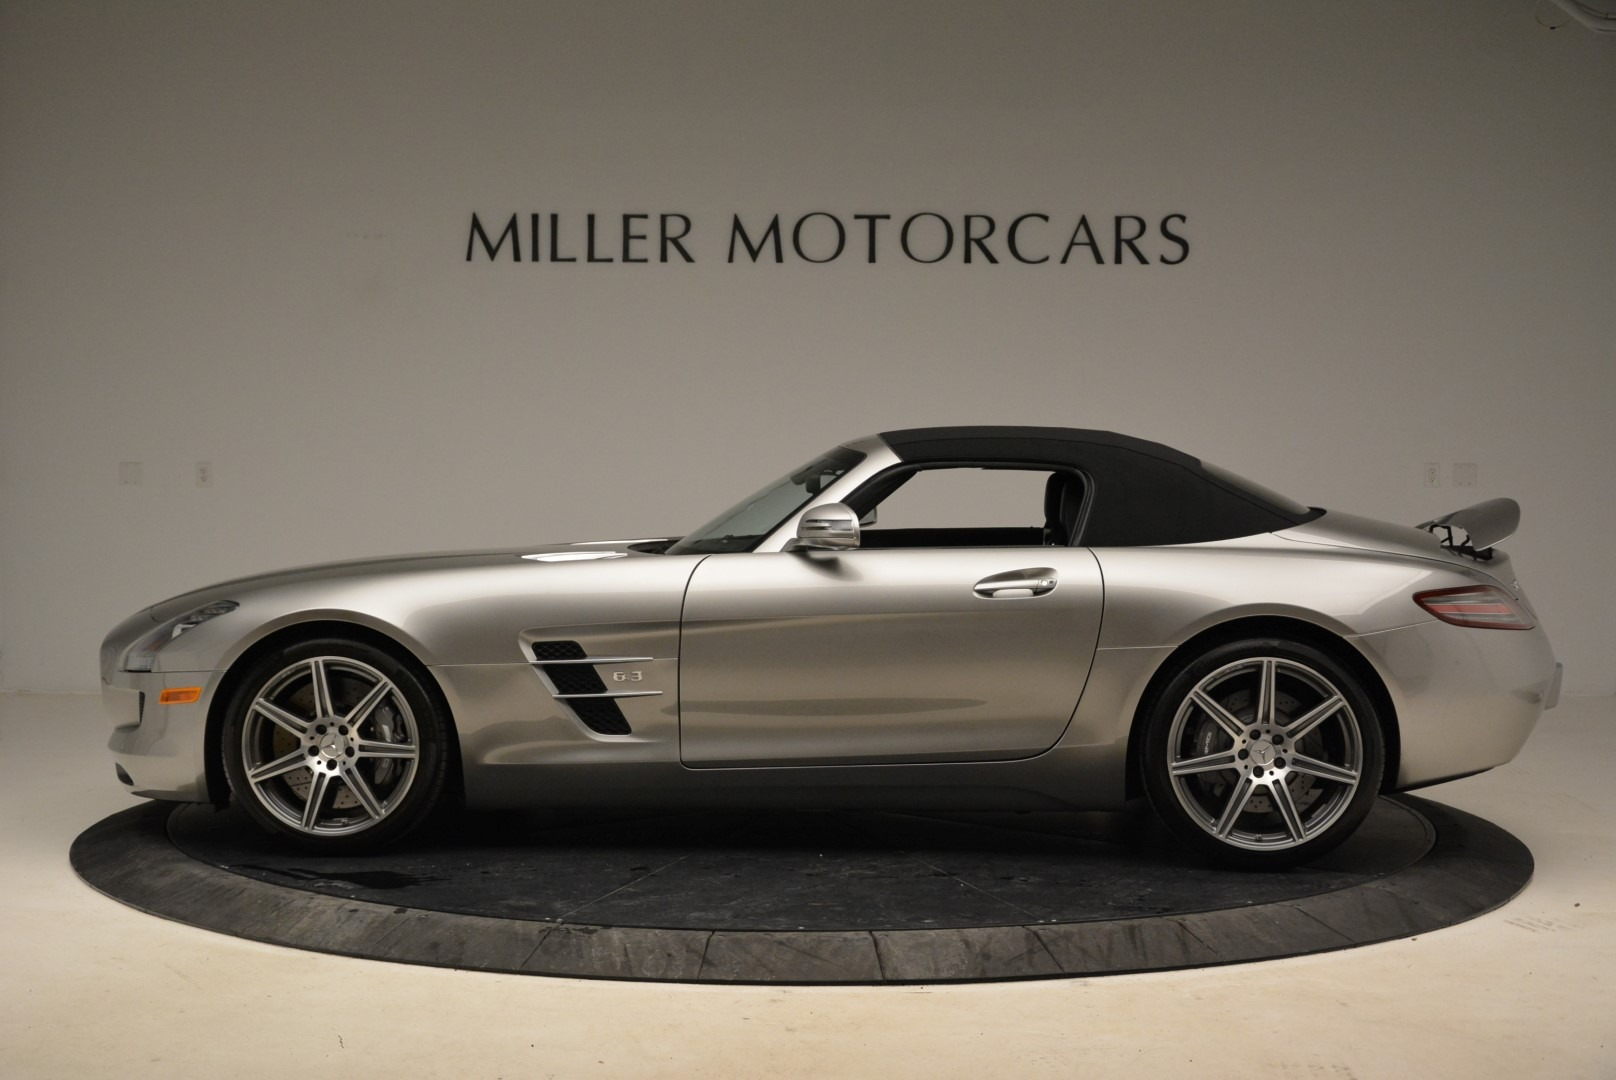 Used 2012 Mercedes-Benz SLS AMG  For Sale In Greenwich, CT. Alfa Romeo of Greenwich, 7330 2068_p14